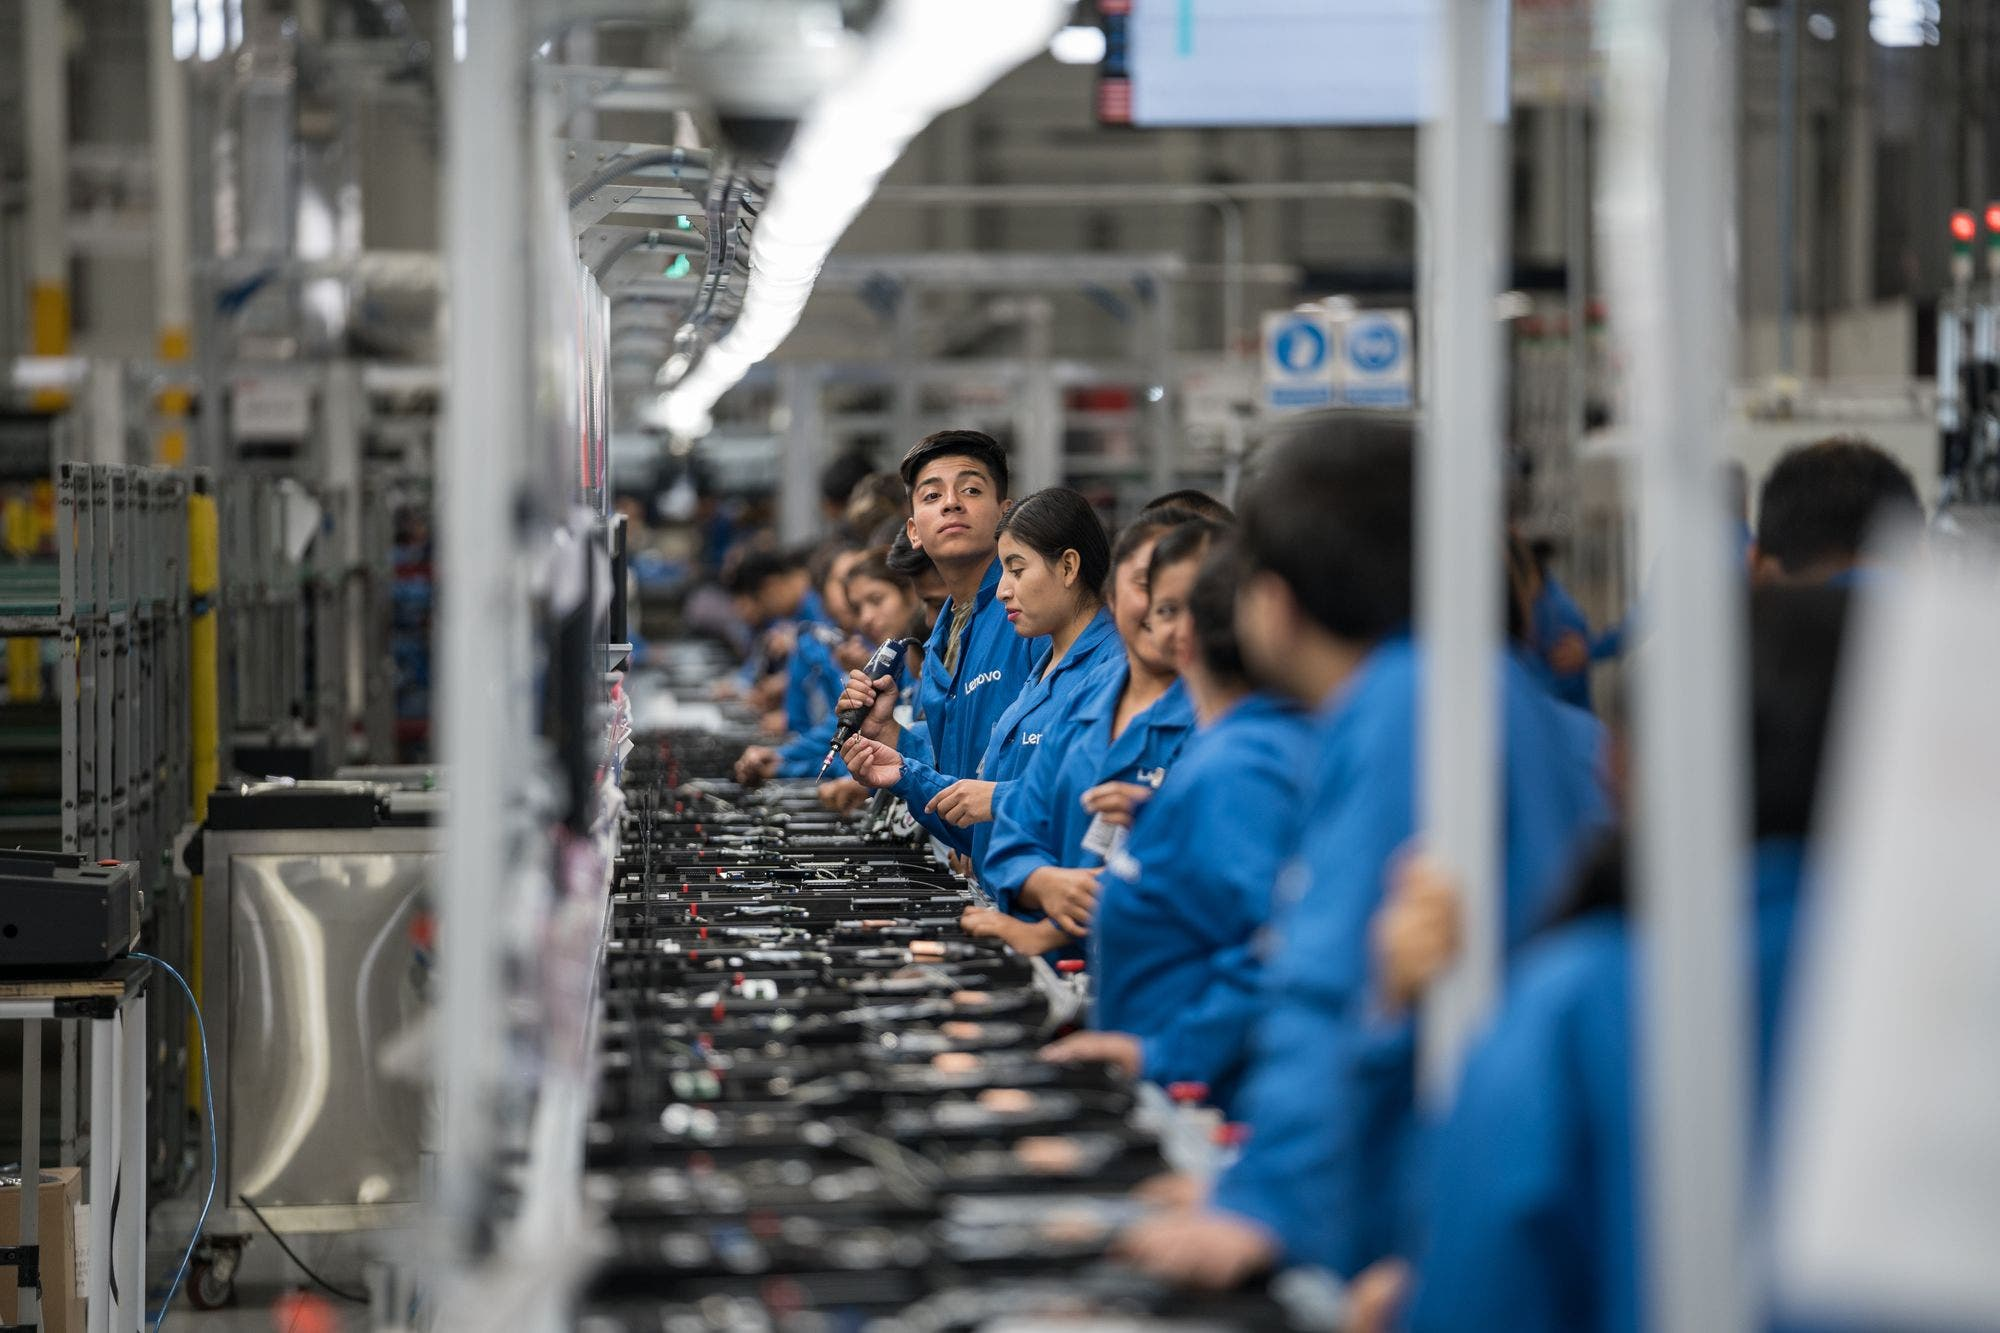 We visited the largest computer factory in the Americas